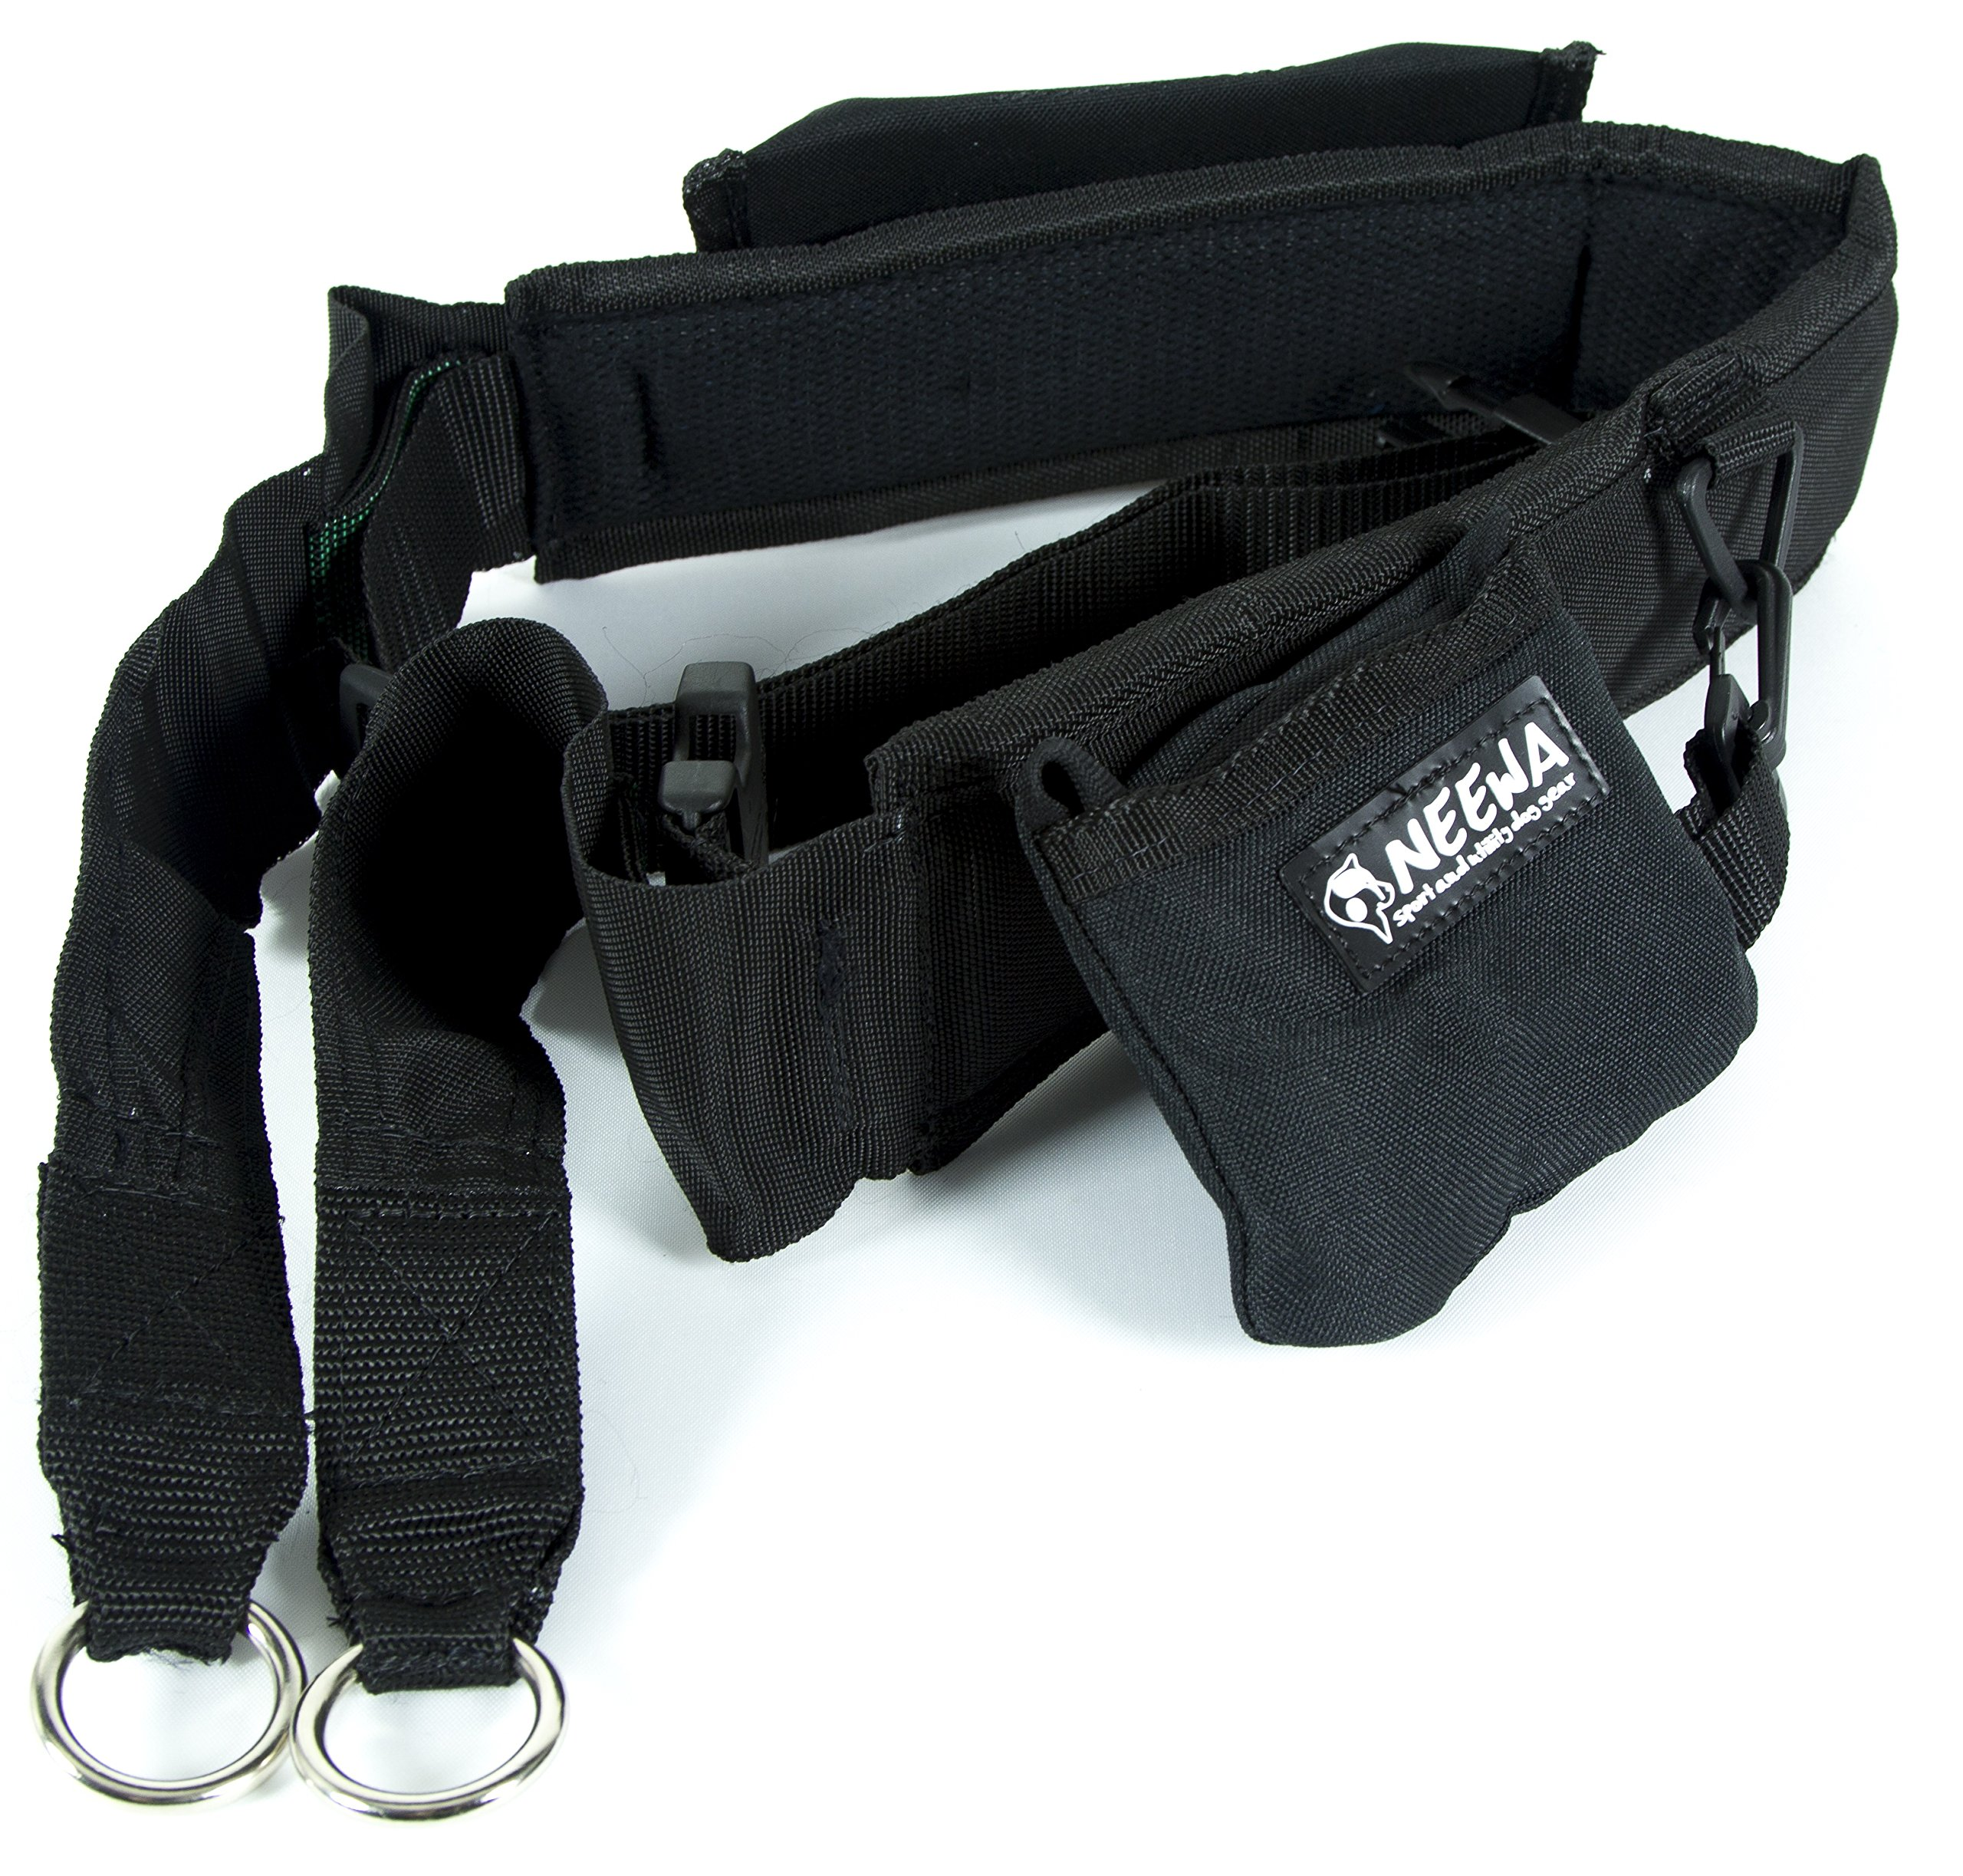 Neewa Dog Walking Belt with Pocket and Collapsing Bowl, Ideal for Trekking, Hiking and Hands Free Dog Leashes by Neewa